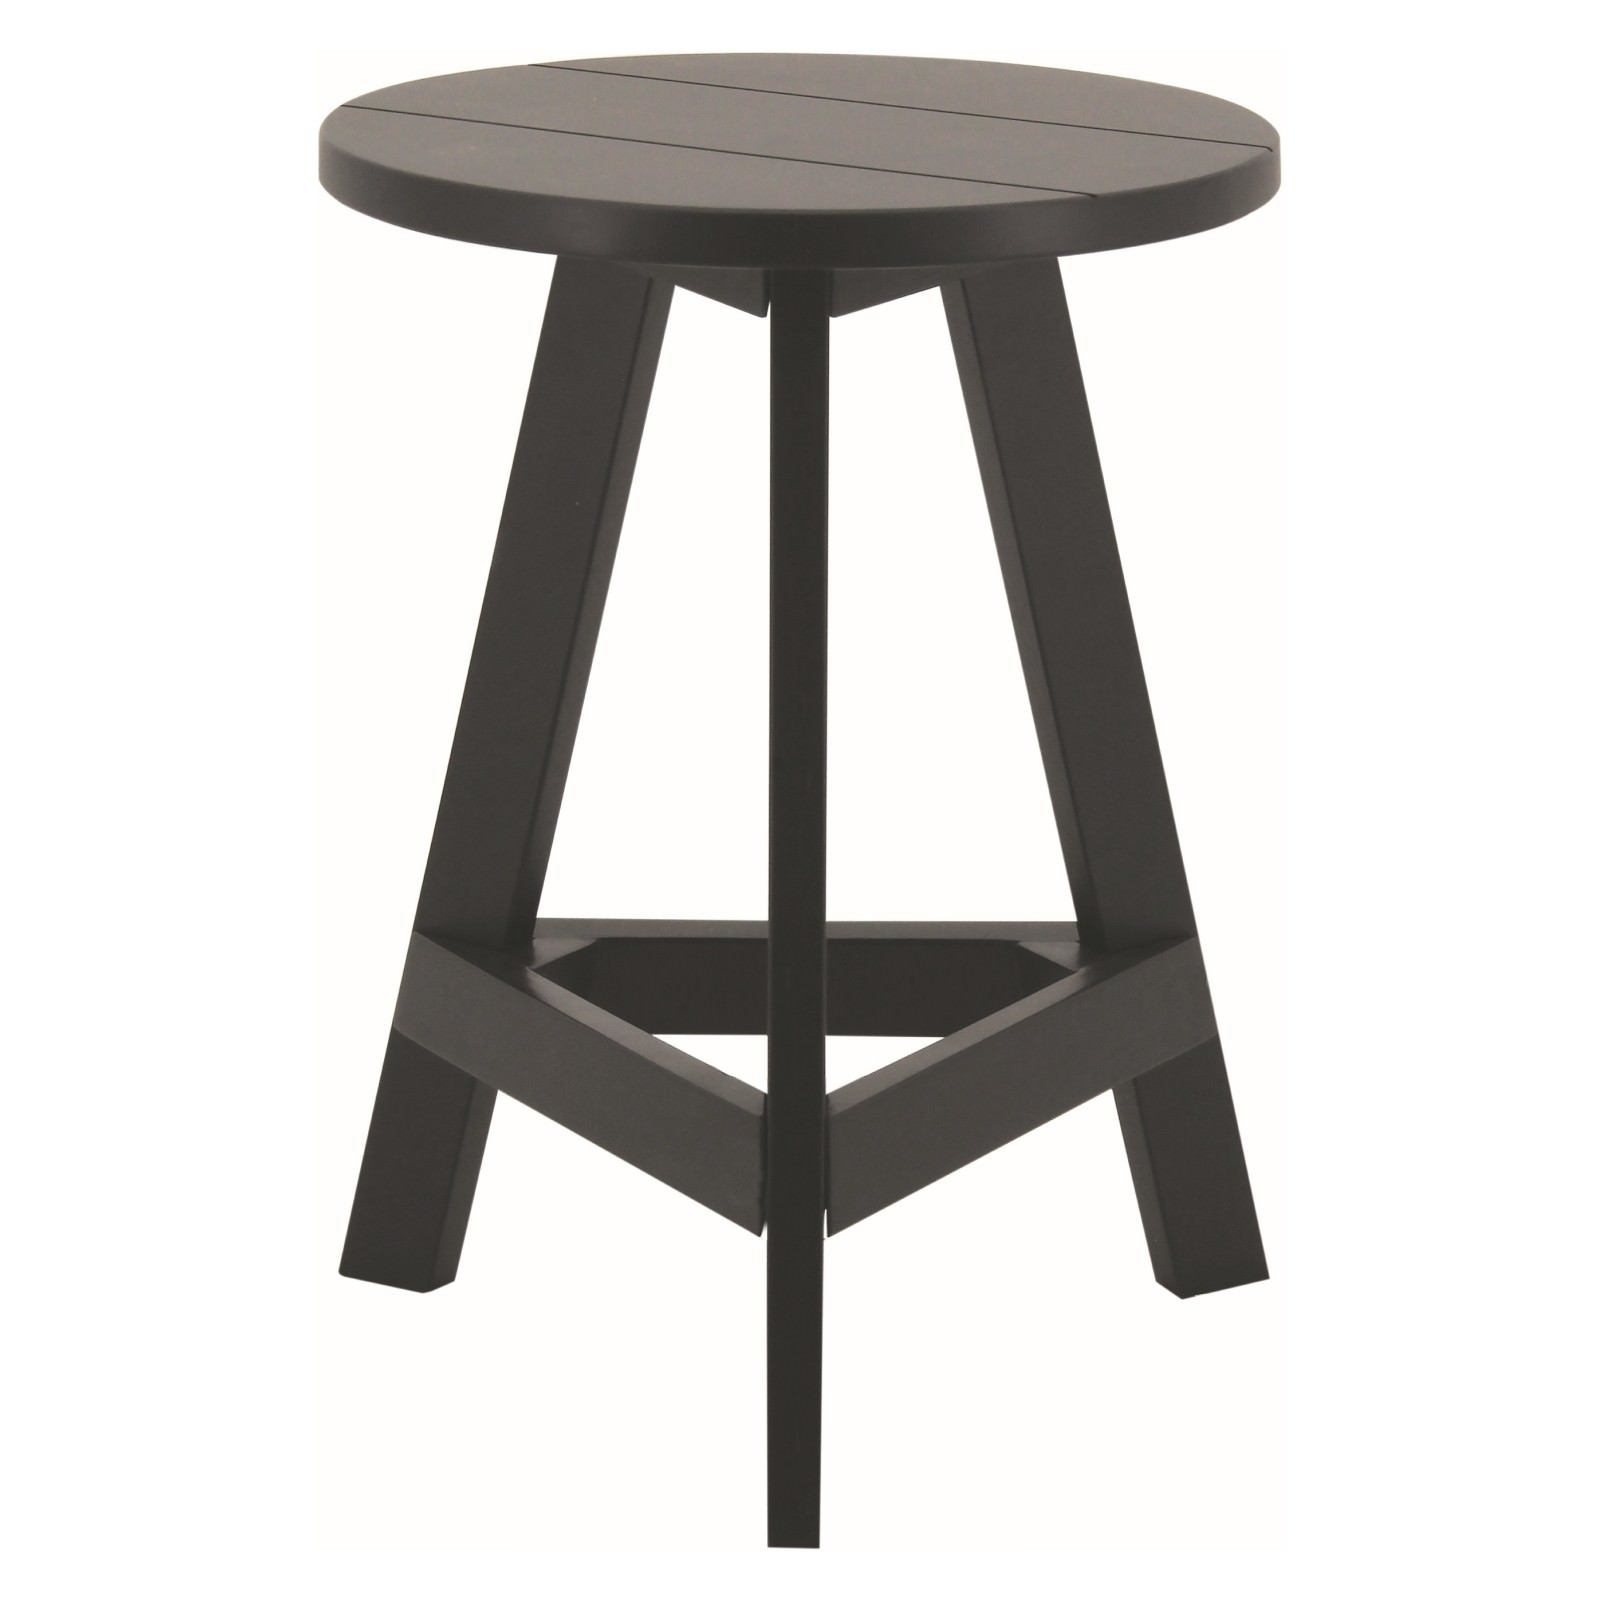 Yumi Wooden Round Table Stool, Black